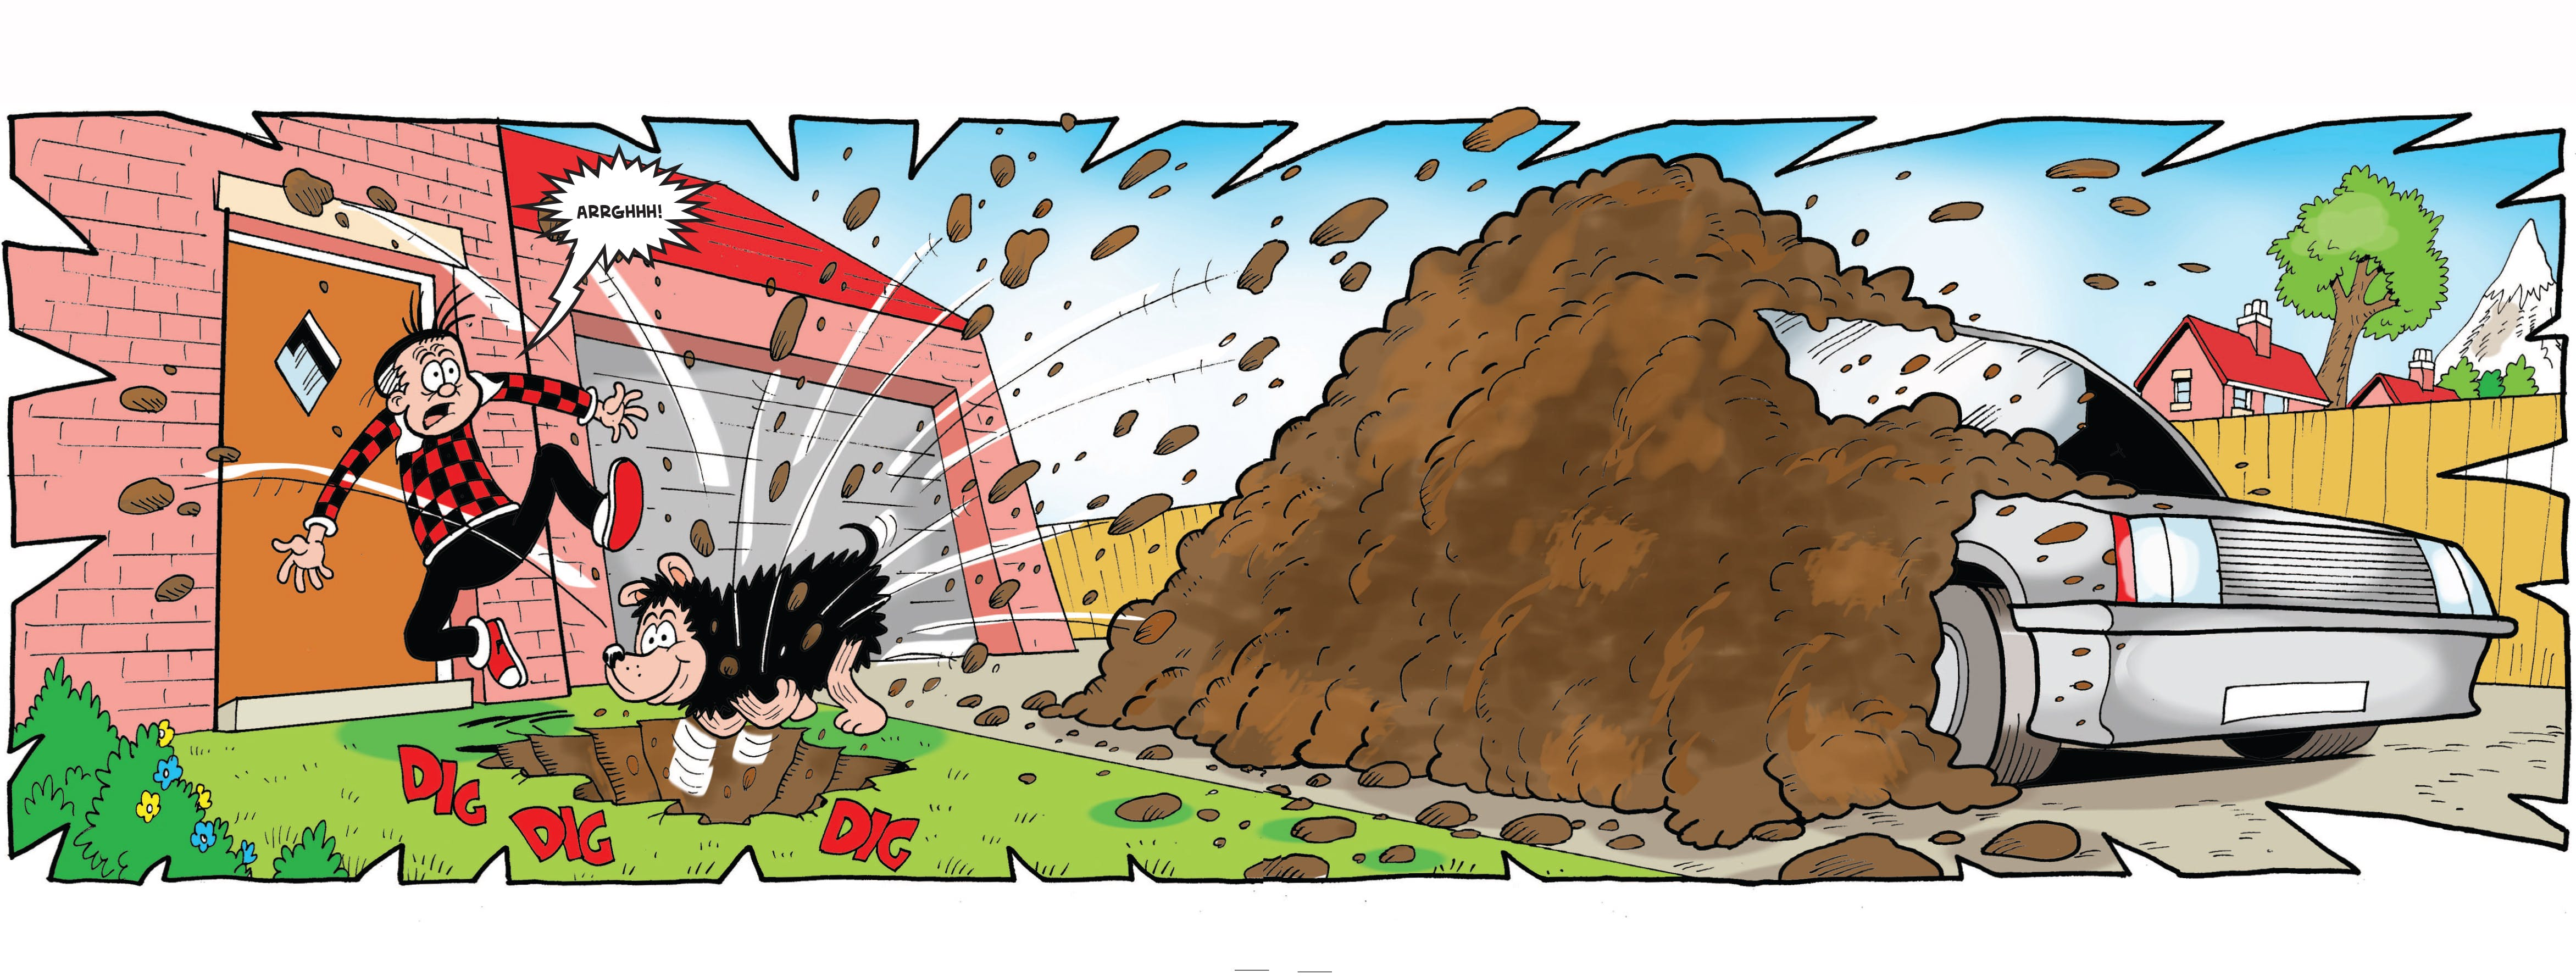 Gnasher buries the car